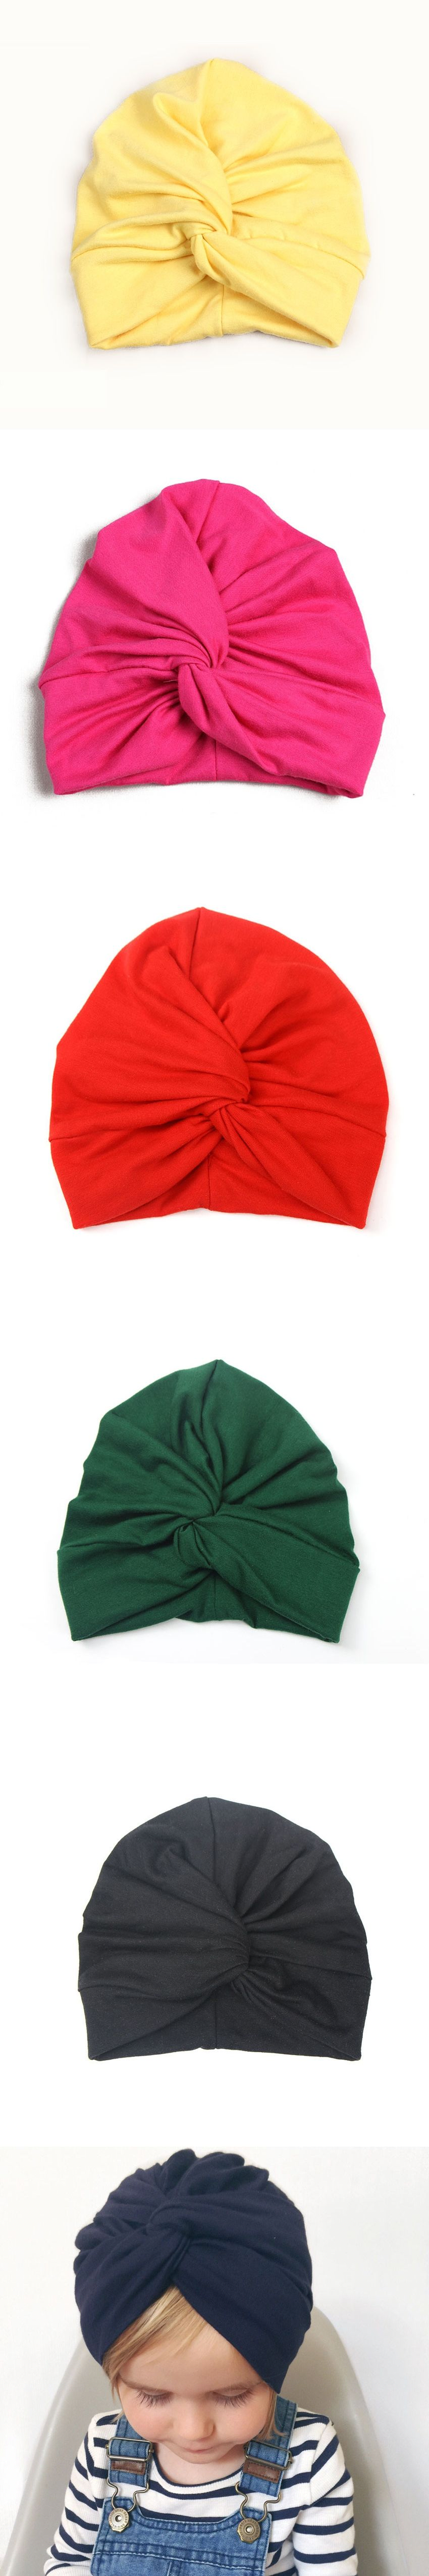 ef3d5bc60b2 New Bohemian Style Baby Cotton Indian Hat Blending Elastic Hat Children  kids beanie dome hats toddler